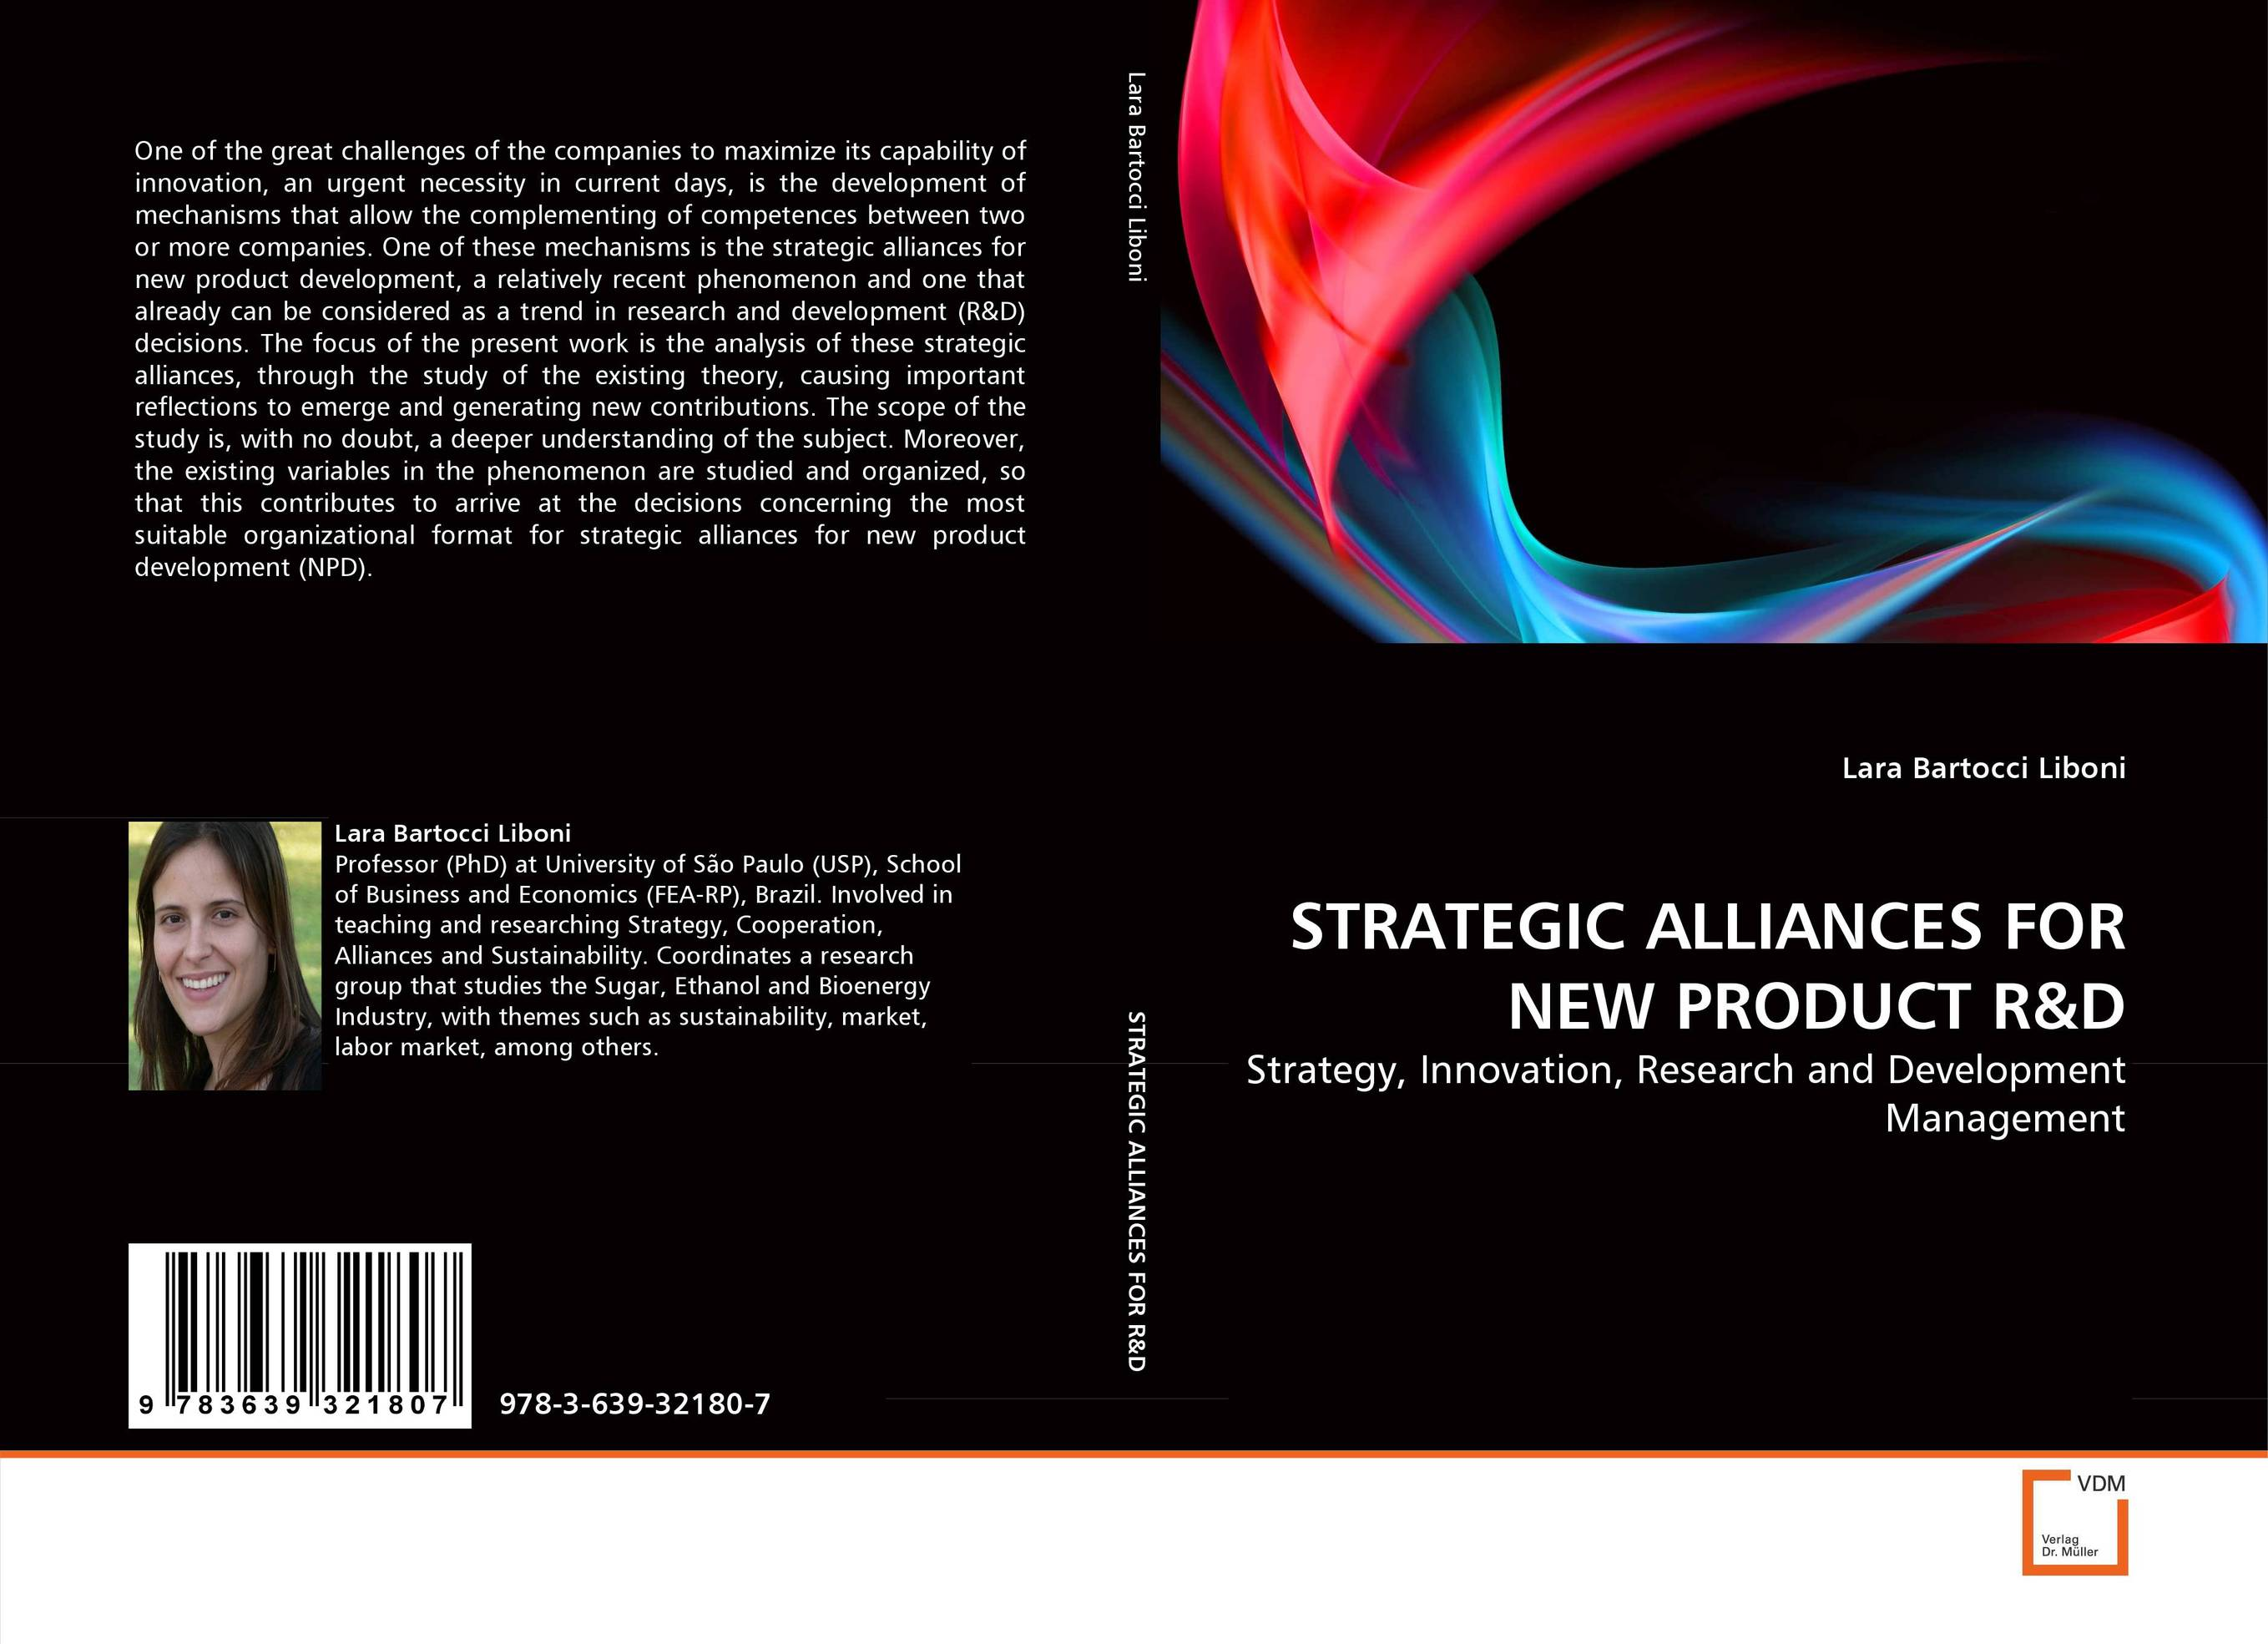 STRATEGIC ALLIANCES FOR NEW PRODUCT R&D ard pieter man de alliances an executive guide to designing successful strategic partnerships